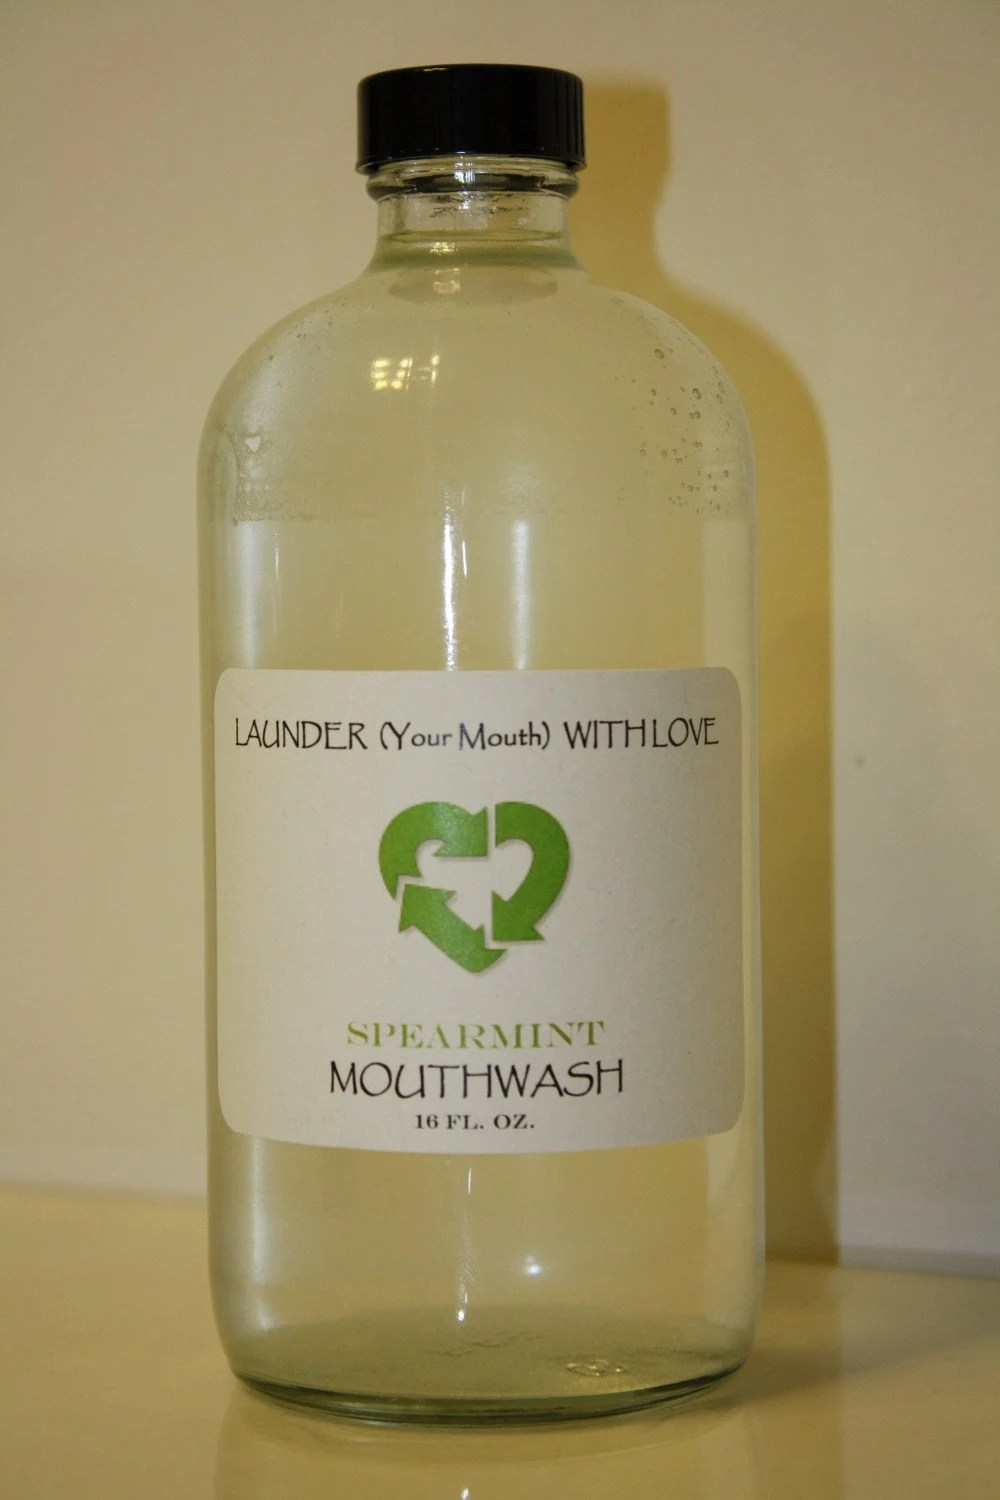 16 oz. Spearmint Mouthwash